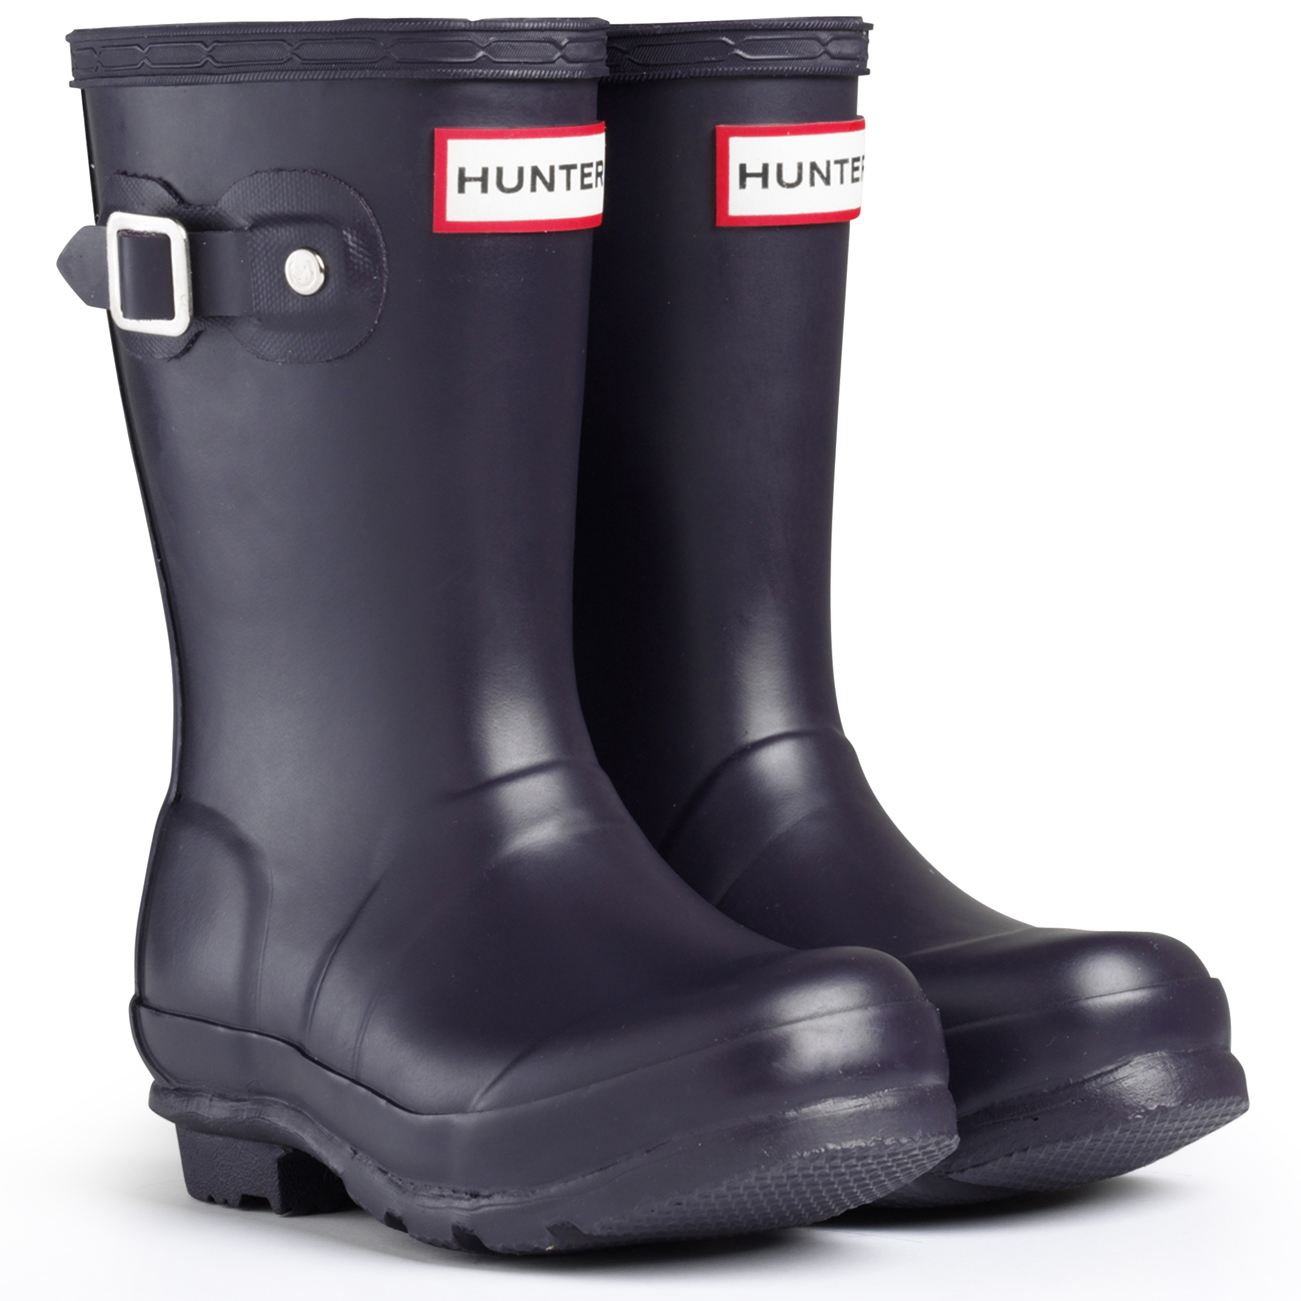 WOMENS HUNTER WELLINGTON SNOW BOOTS ORIGINAL KIDS RAIN SNOW WELLINGTON WELLIES LADIES UK 10-2 13a7fc